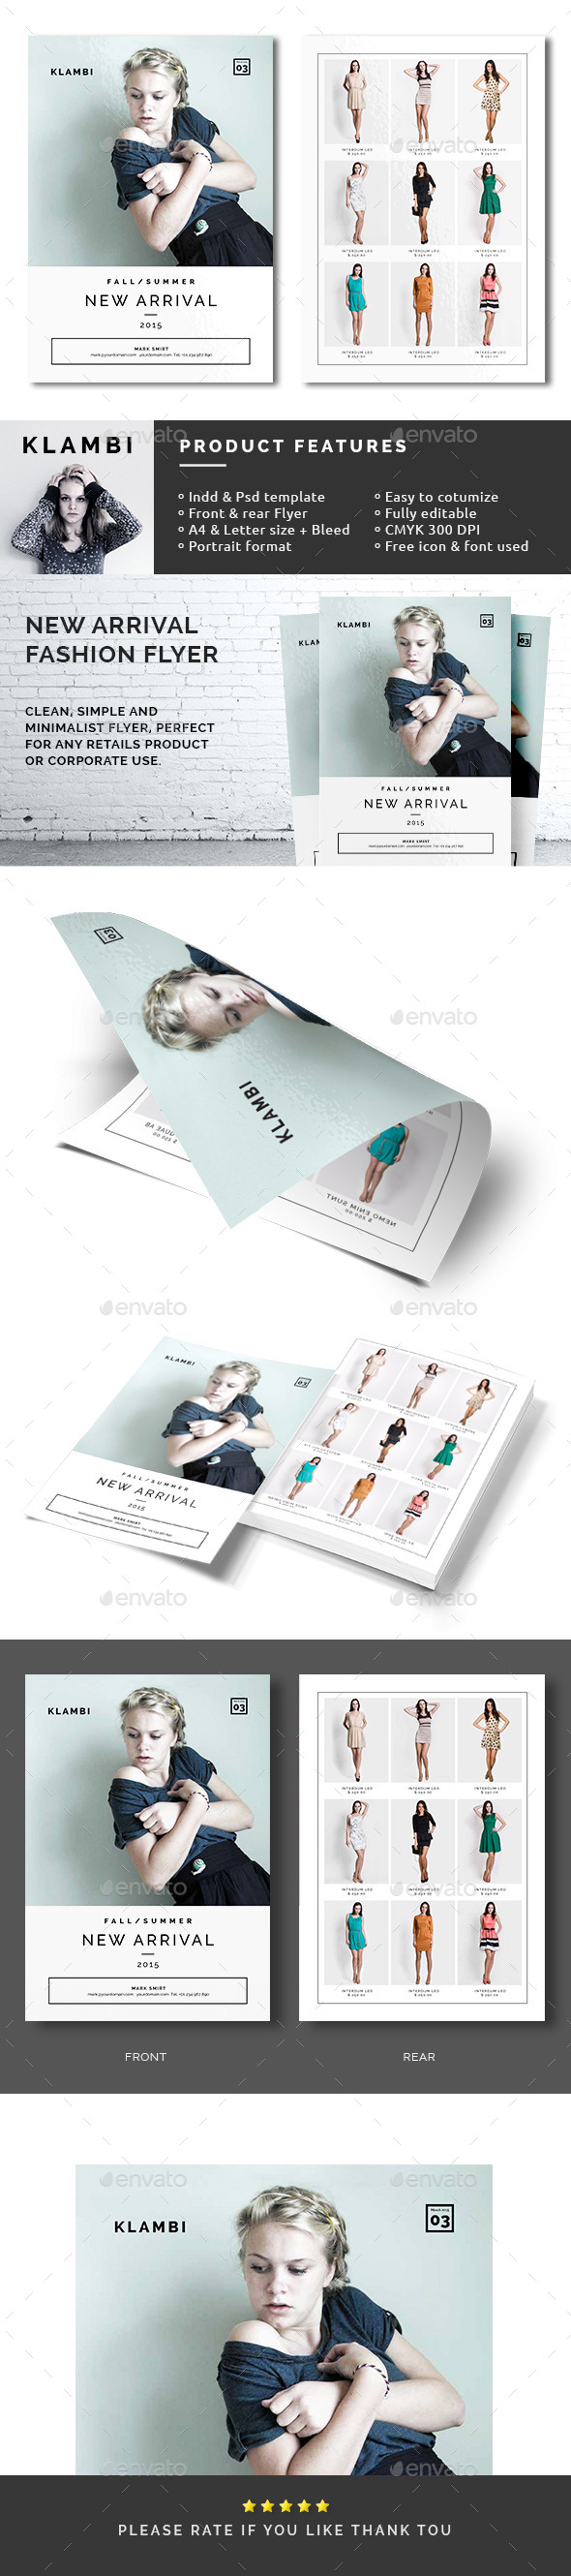 GraphicRiver New Arrival Fashion Flyer 10511188